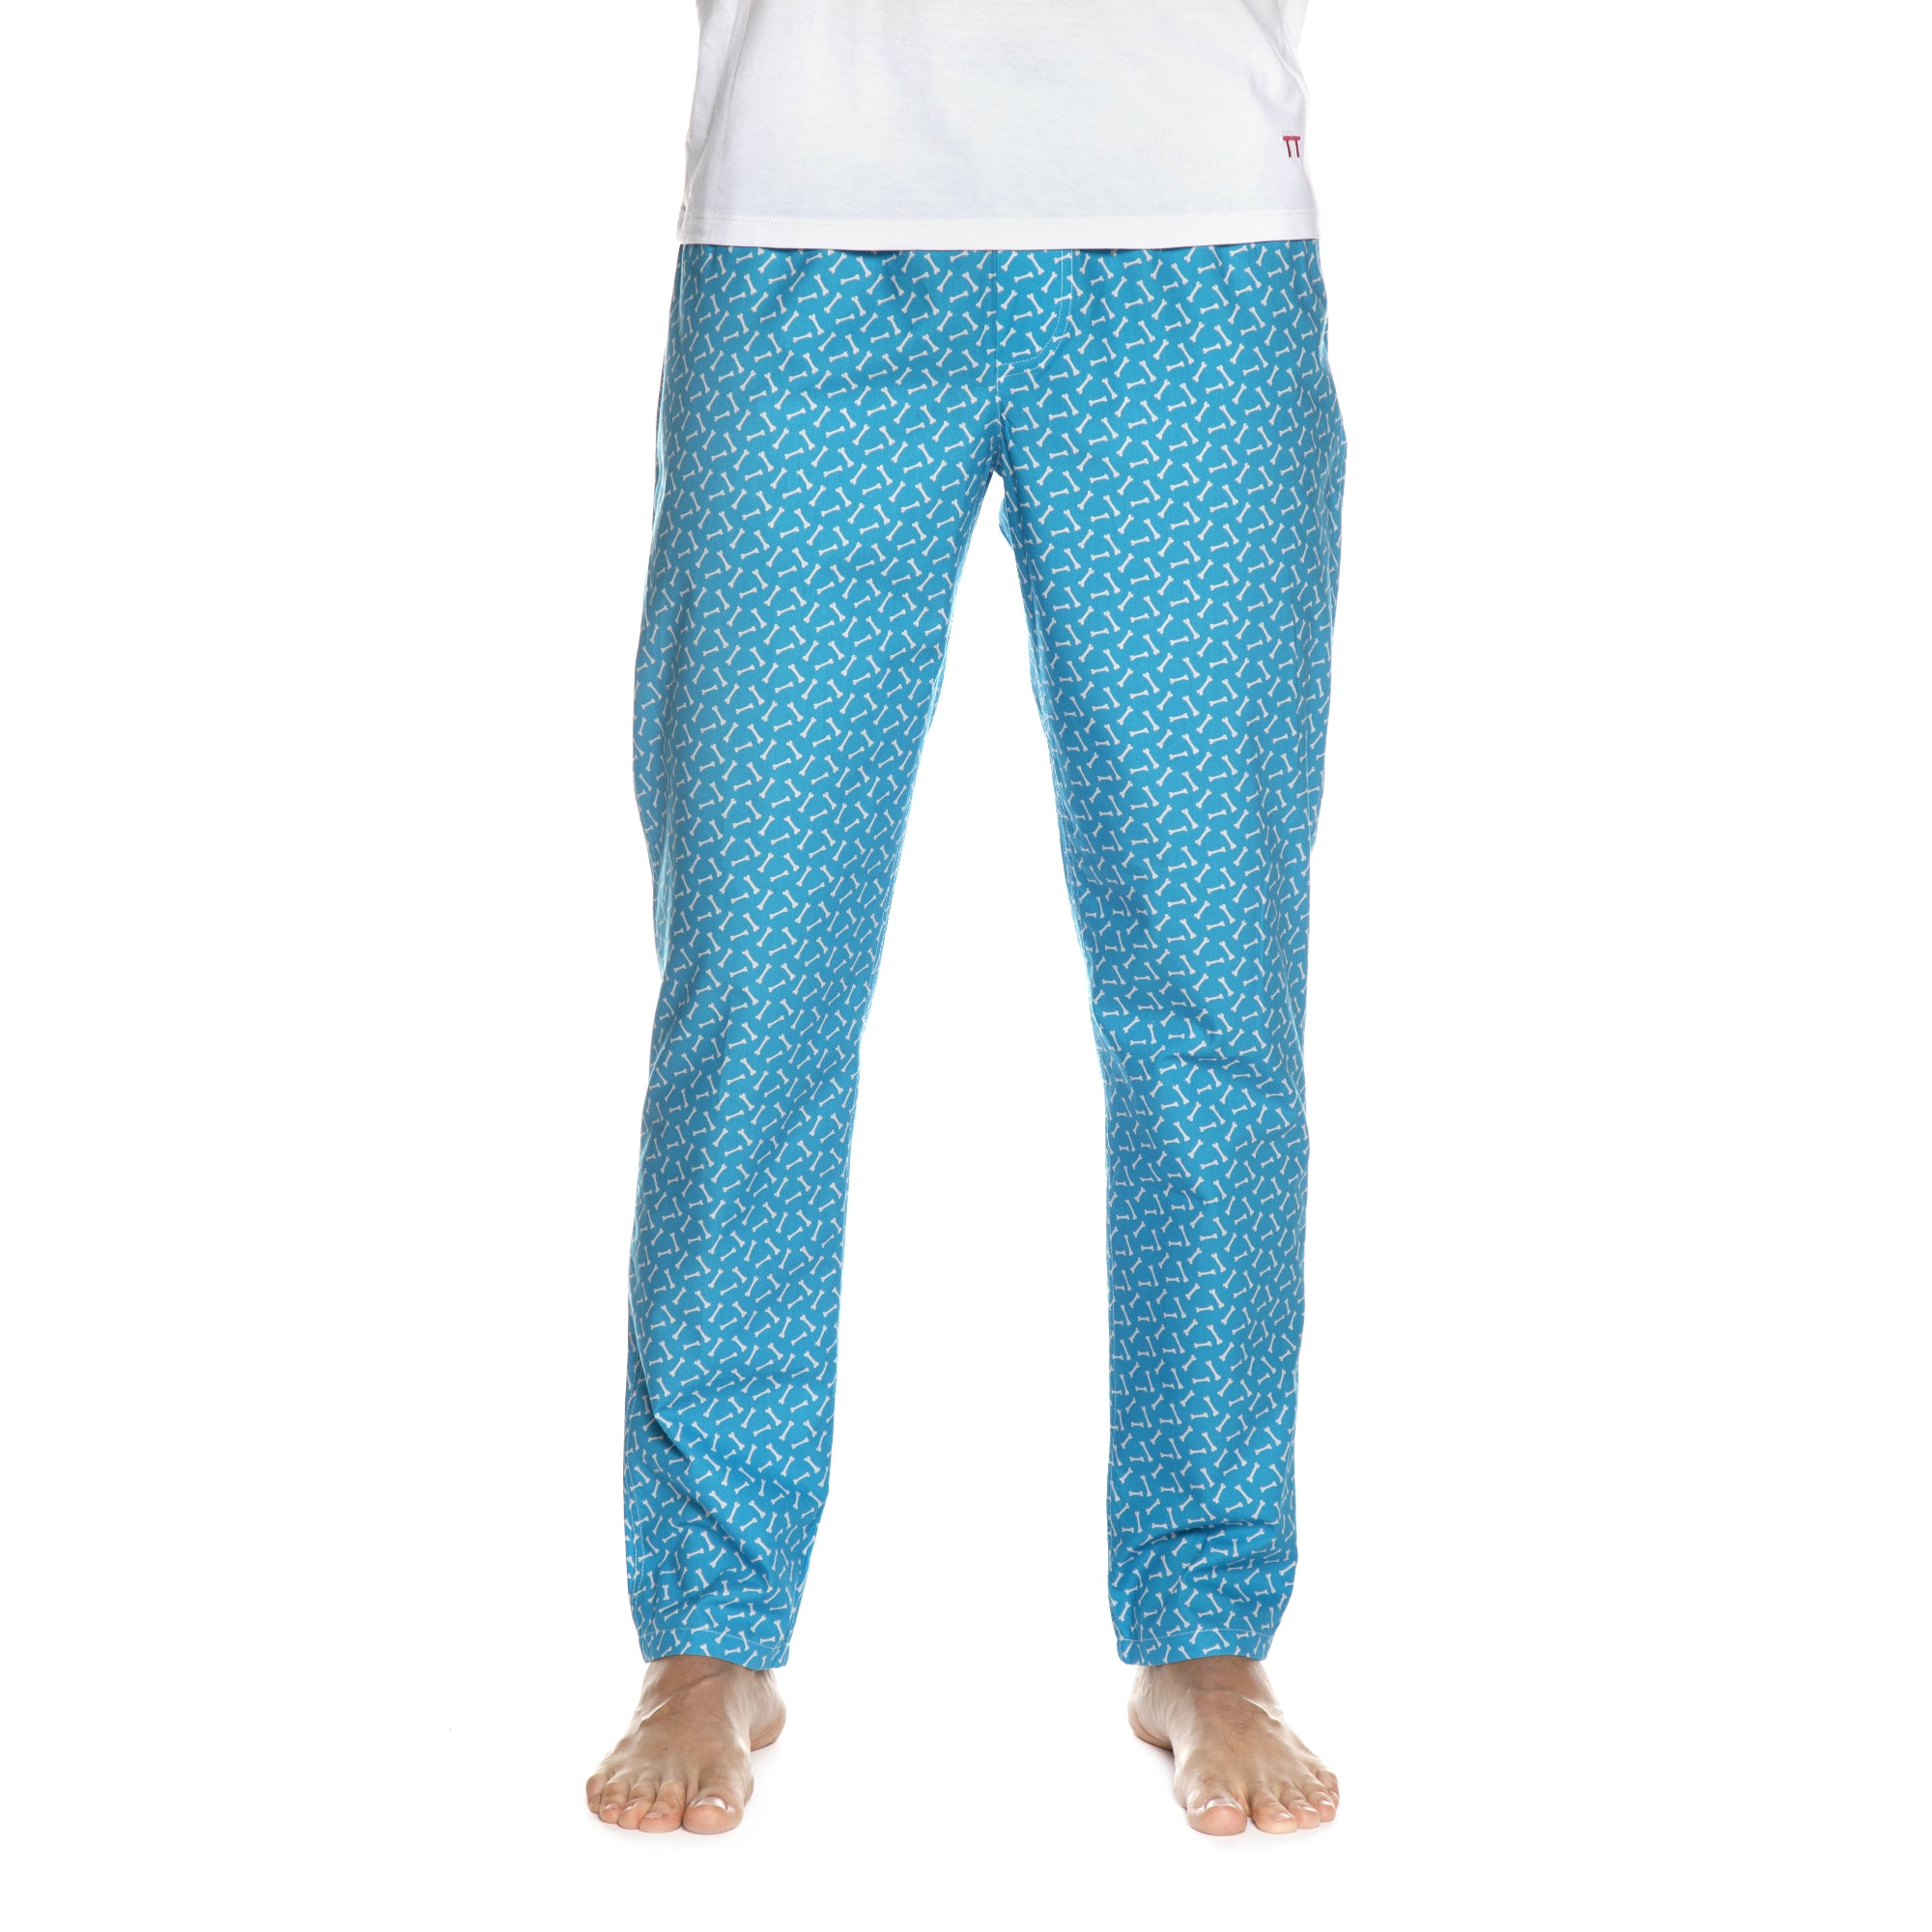 'Feel It In My Bones' Pyjama Set